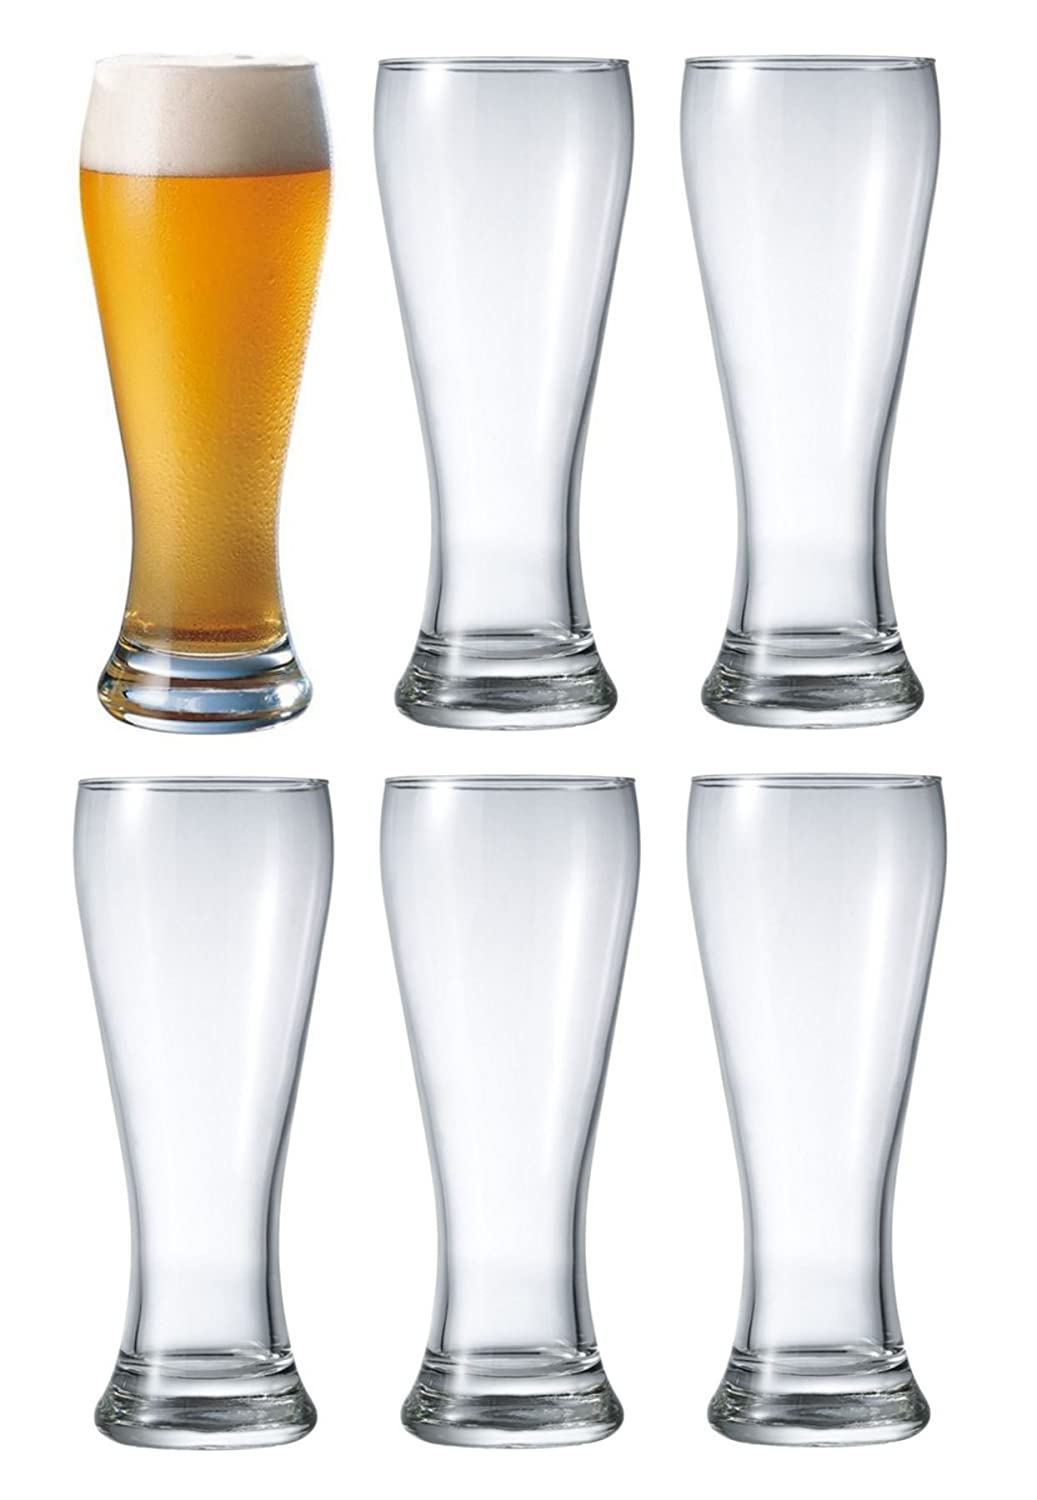 Durobor Danube Beer Lager Glass Glasses 660ml Set of 6